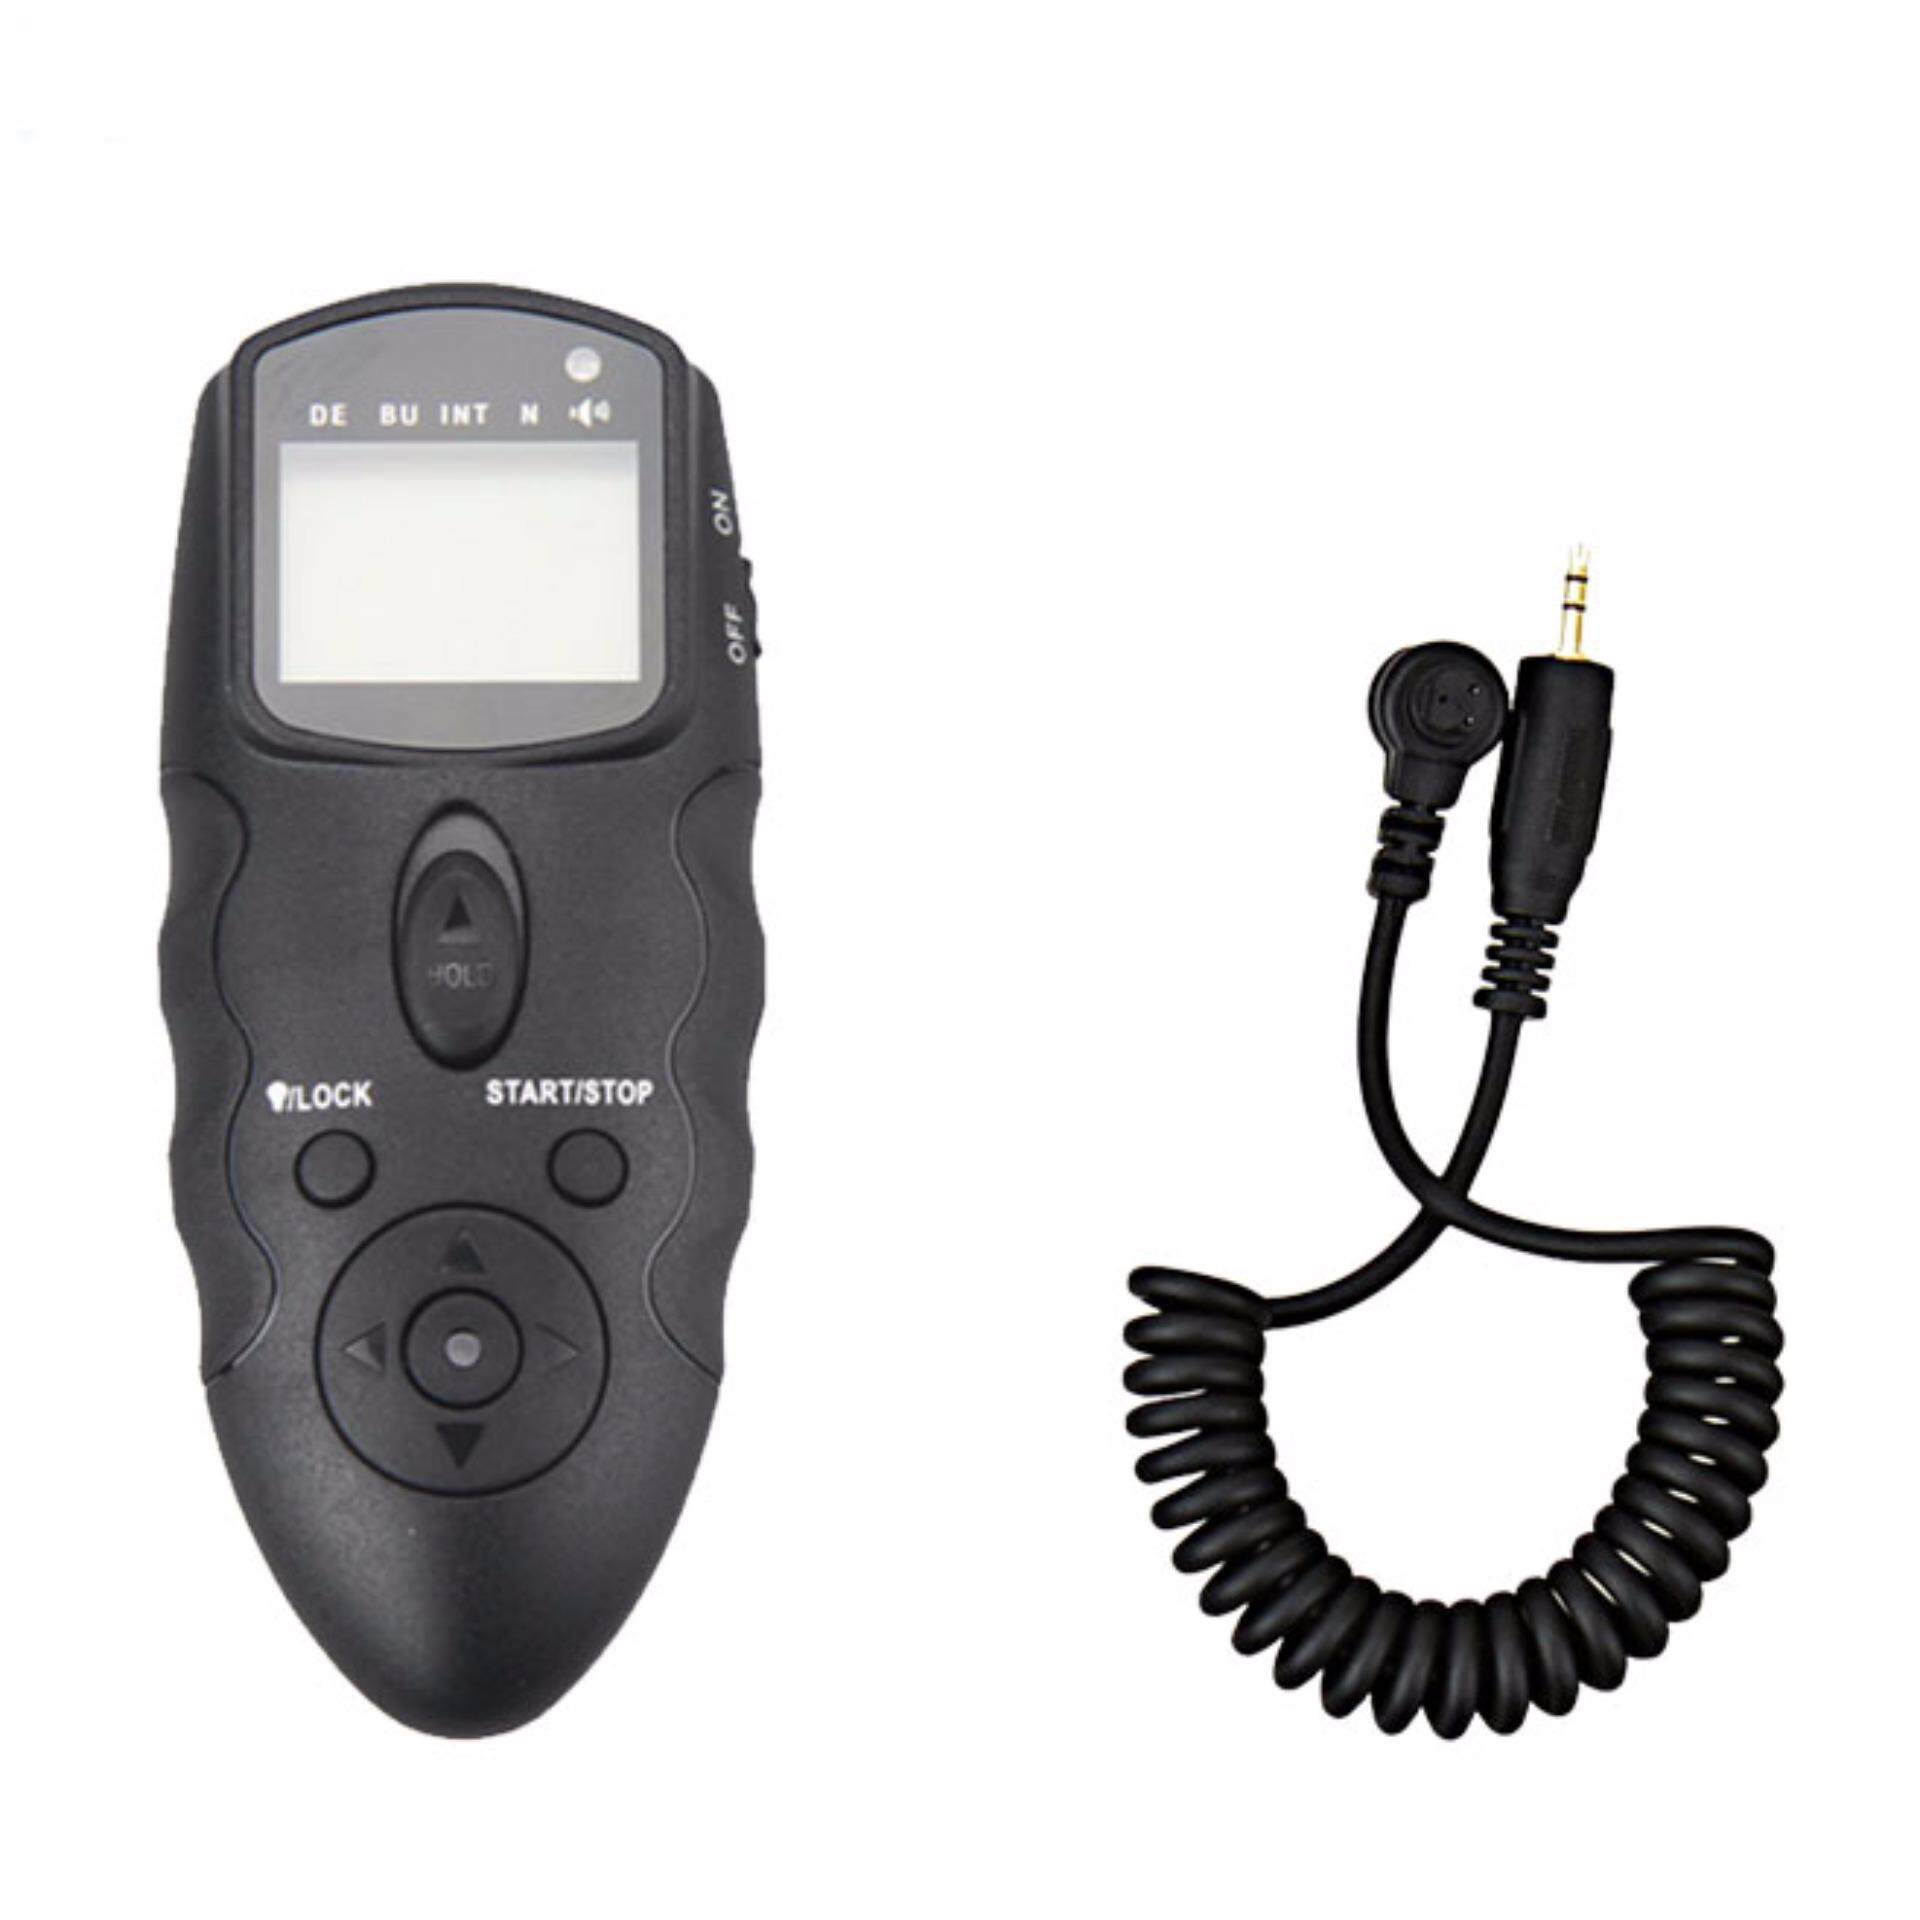 JJC MT-636 with Cable-B LCD Timer Remote for Camera Nikon D3 D4 D700 D800